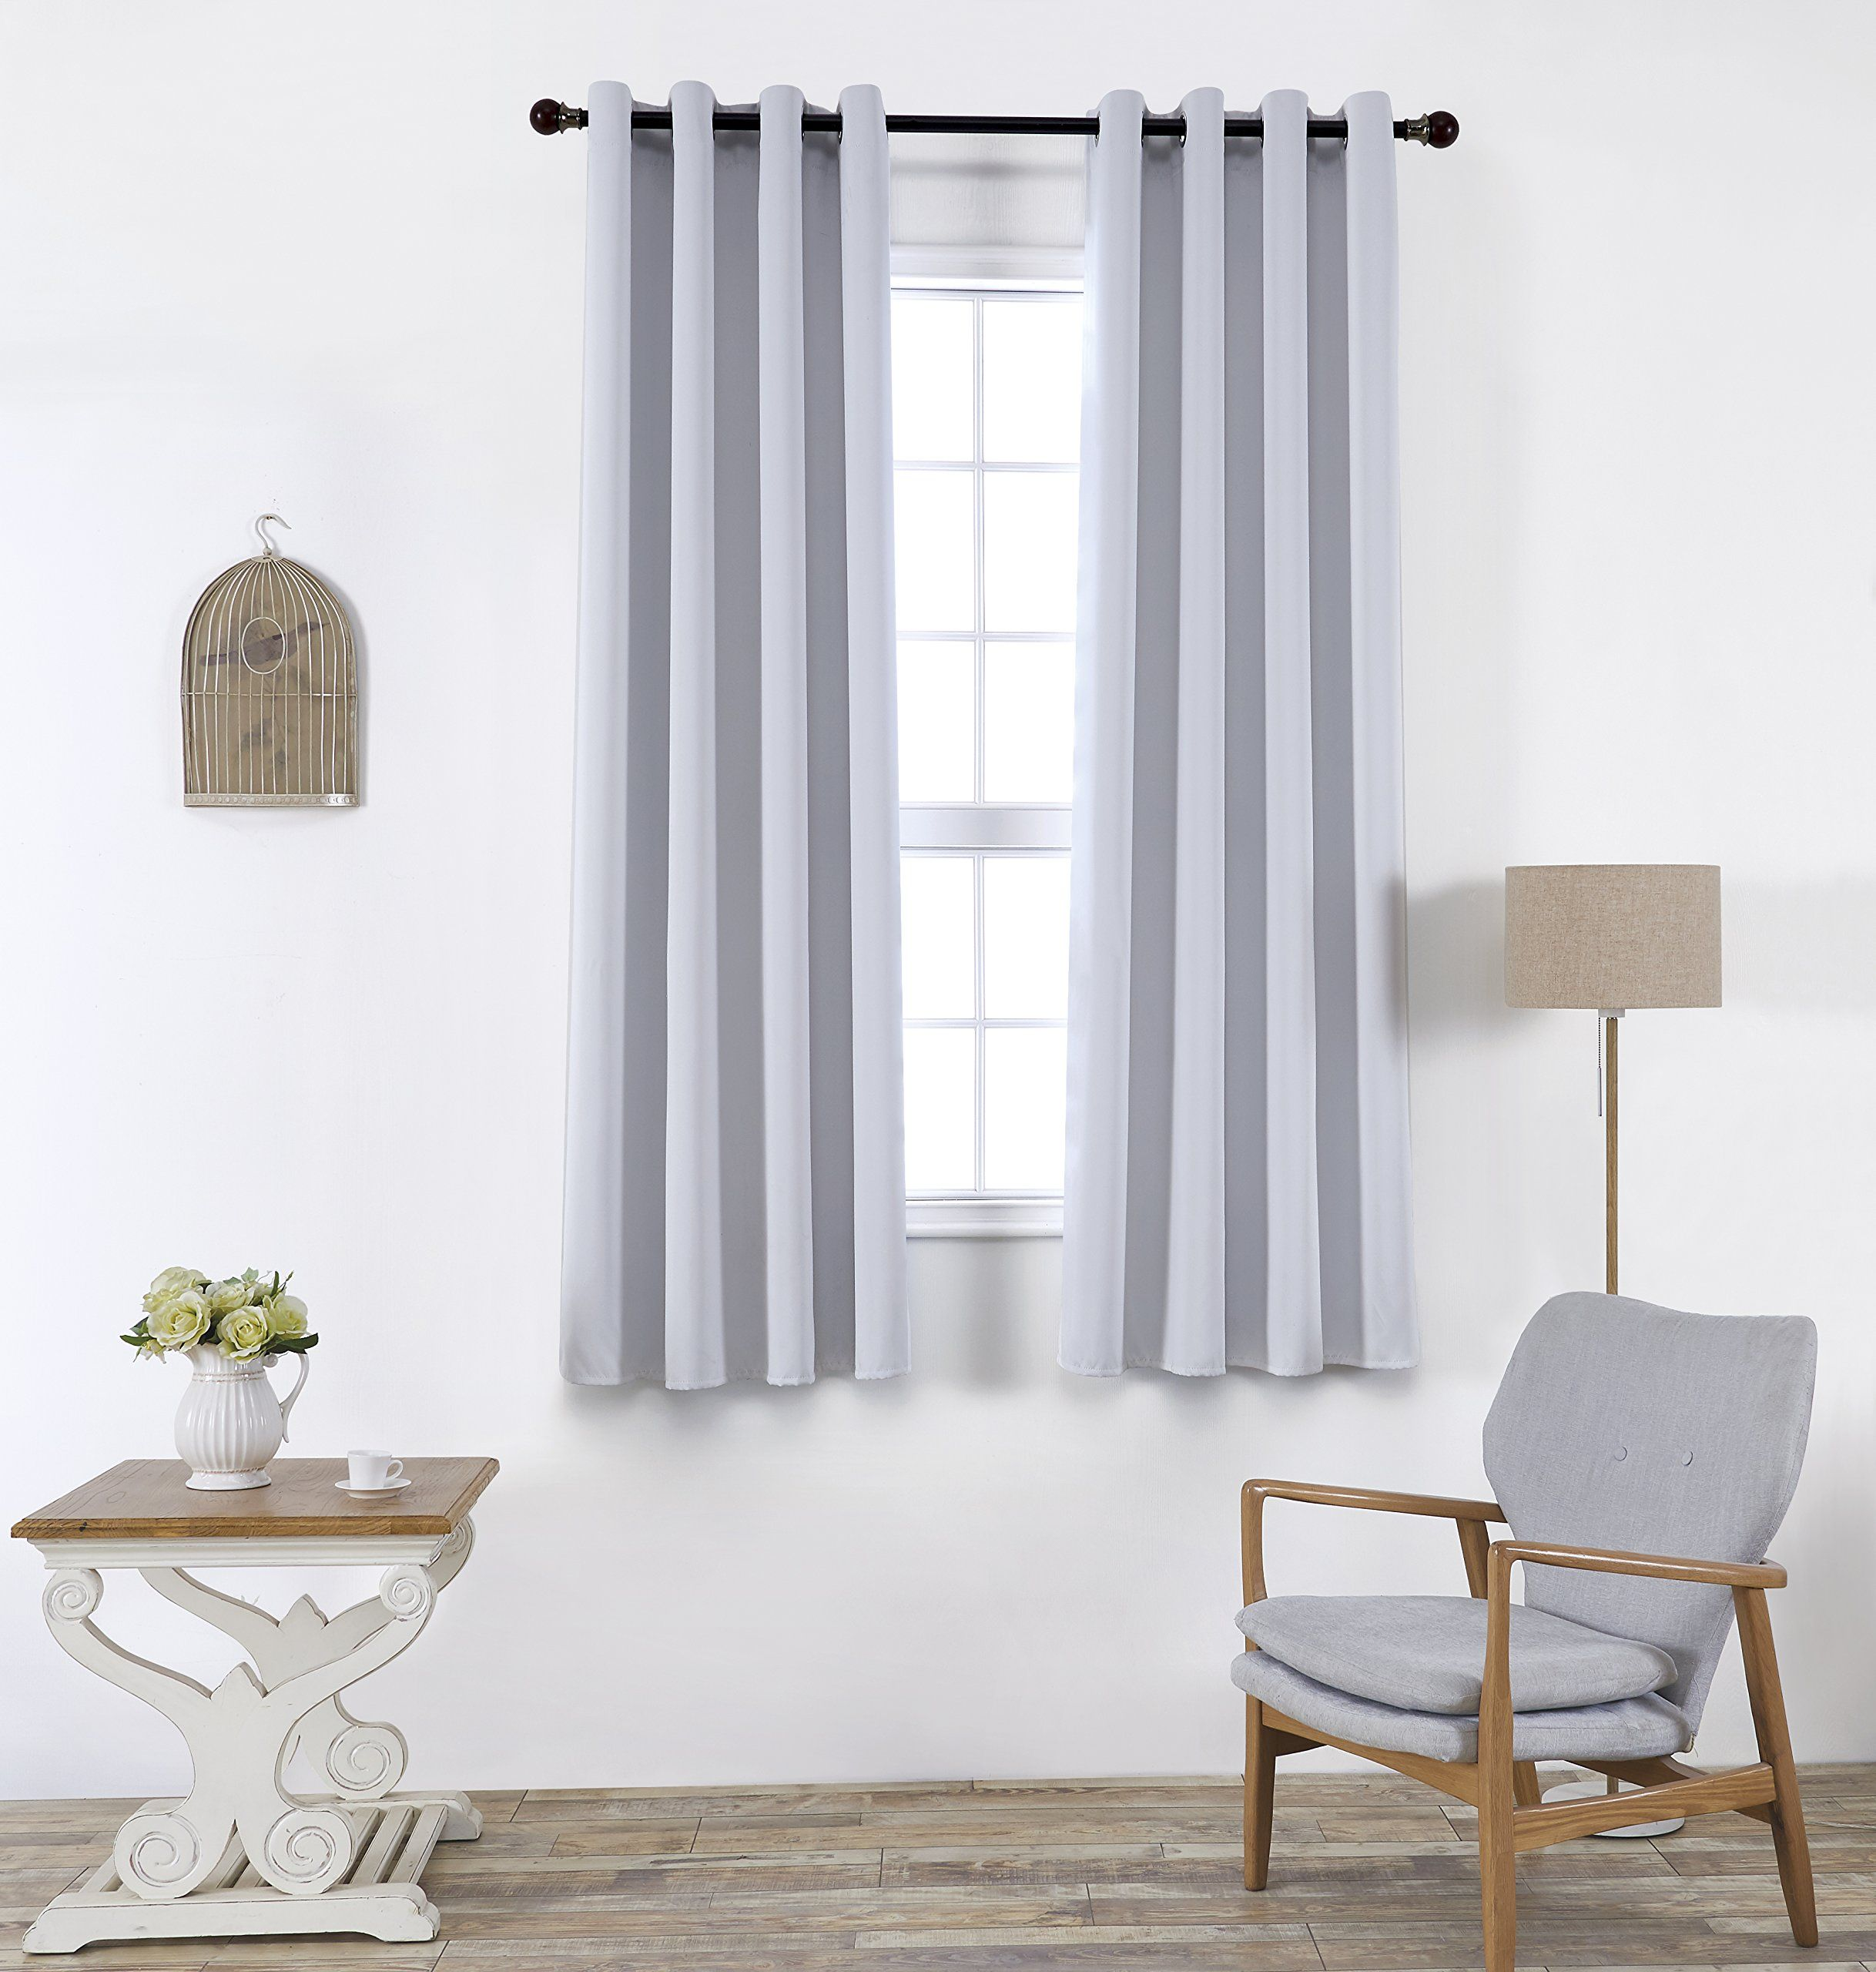 Blackout Curtains 1 Panel 52X63 Inches Greyish White Thermal Insulated